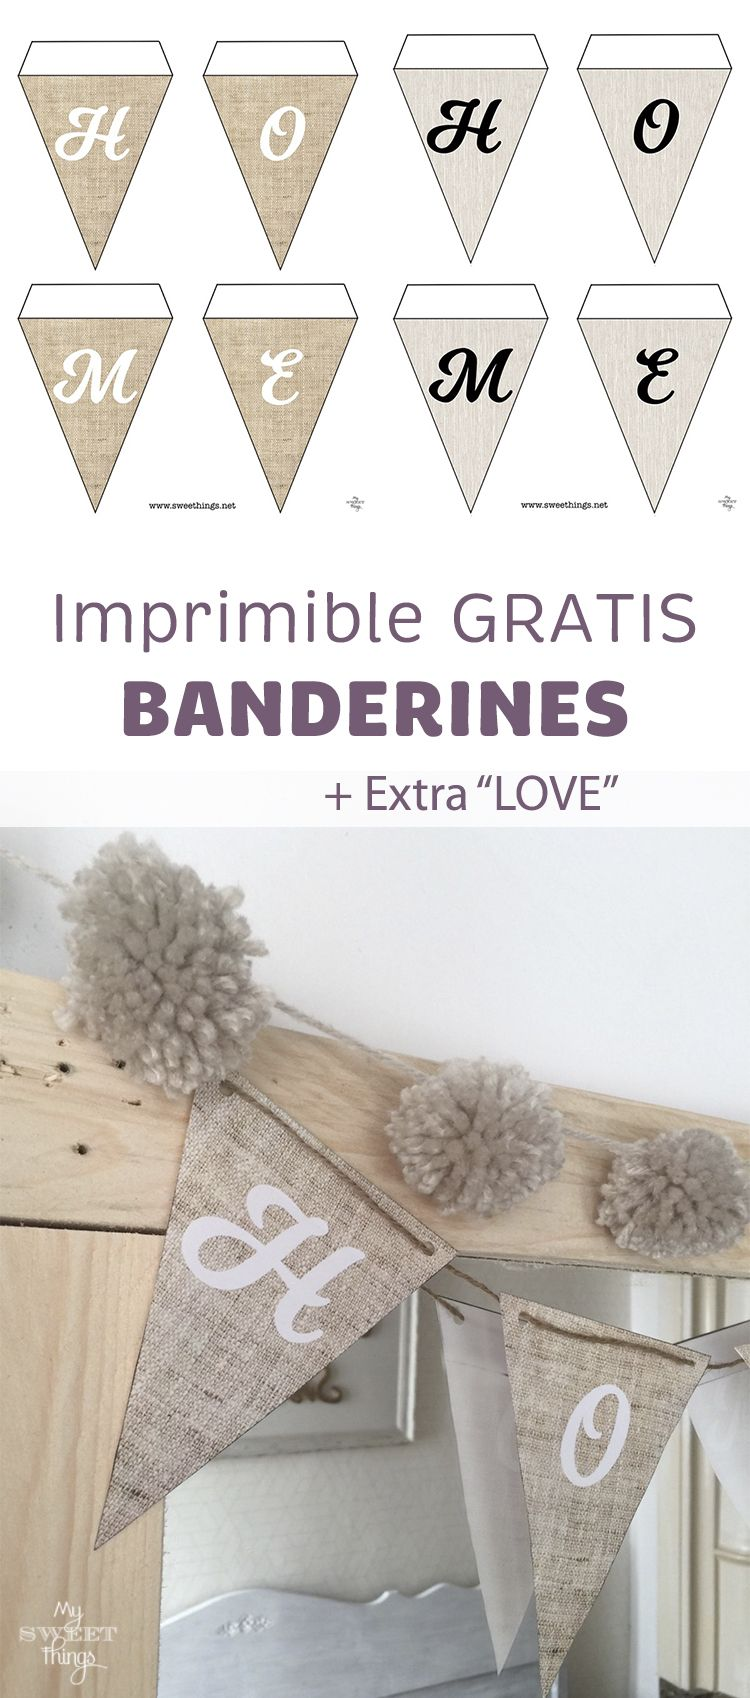 Decoración low cost - banderines decorativos de papel para imprimir · Via www.sweethings.net